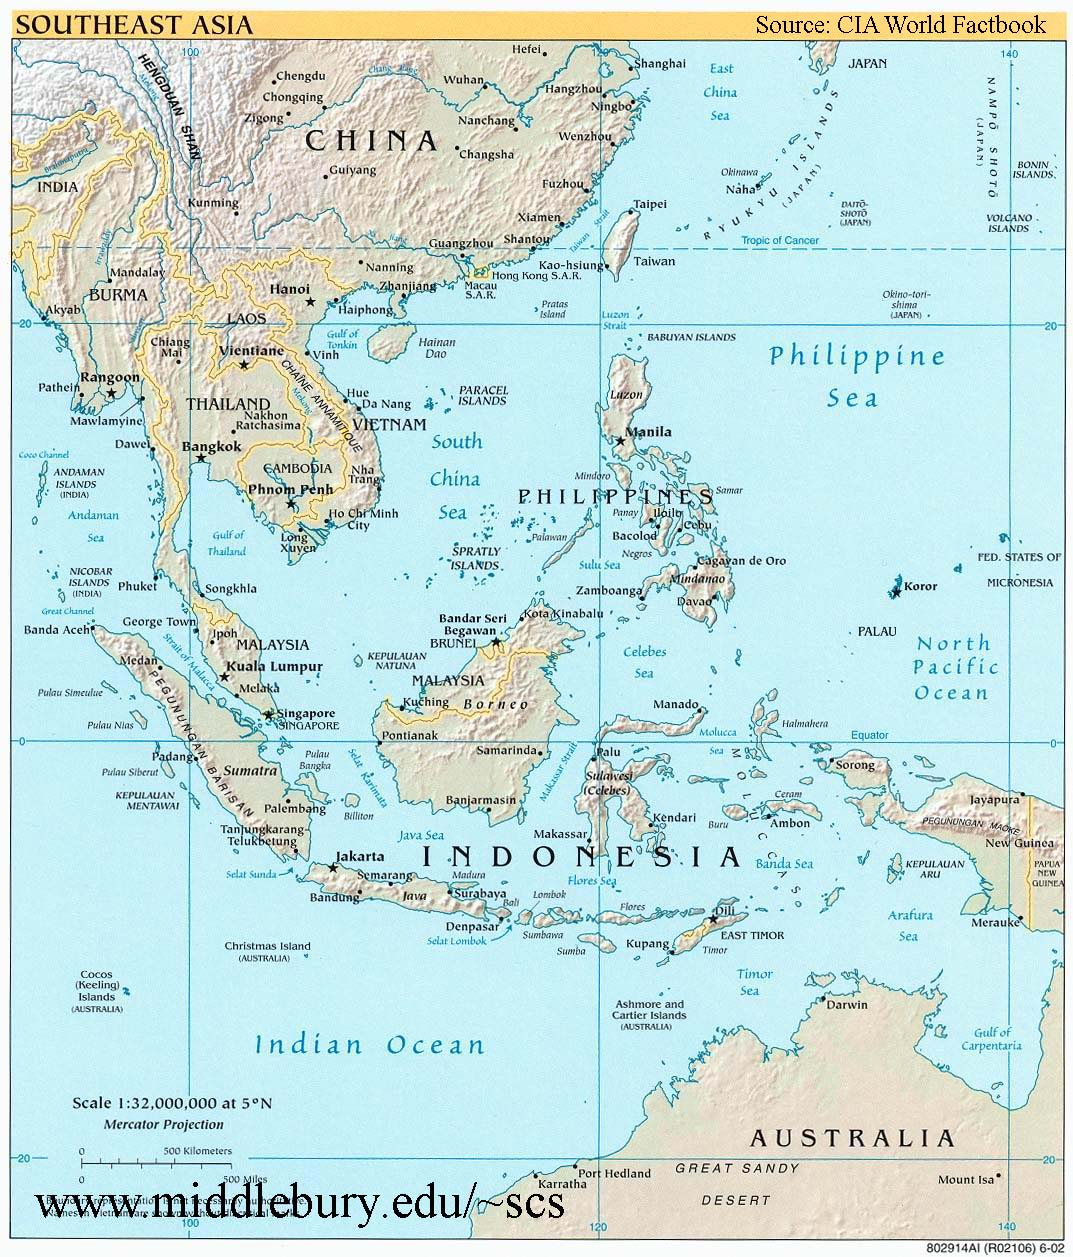 https://i0.wp.com/www.southchinasea.org/files/2011/08/Southeast-Asia-Reference-Map-CIA-World-Factbook.jpg